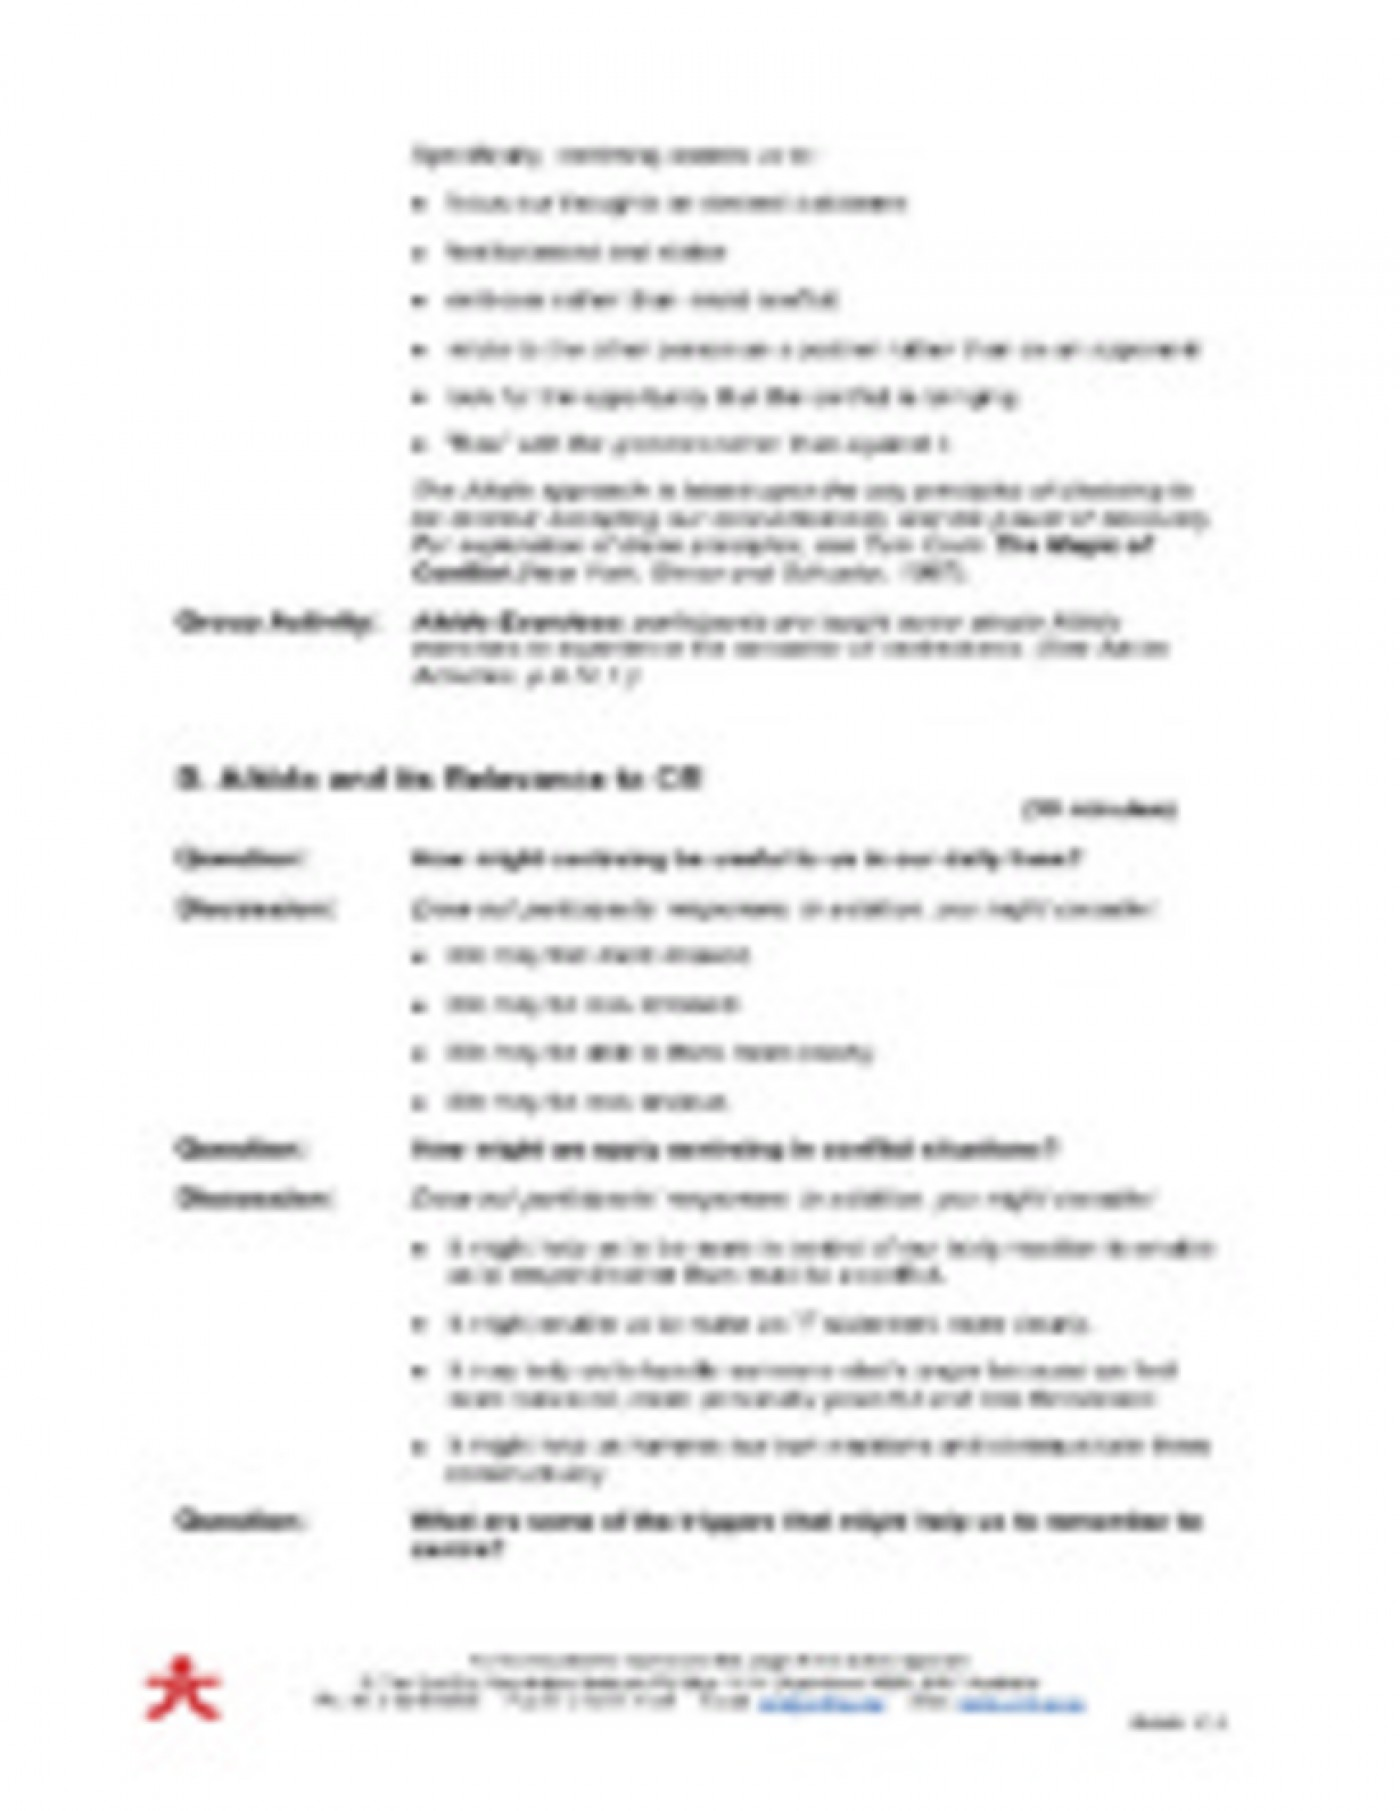 011 Conflict20resolution20class20notes 28058935 Aikido Conflict Resolution Material Part 17page2 Essay Example Formidable Trifles Questions Feminism Topics 1400